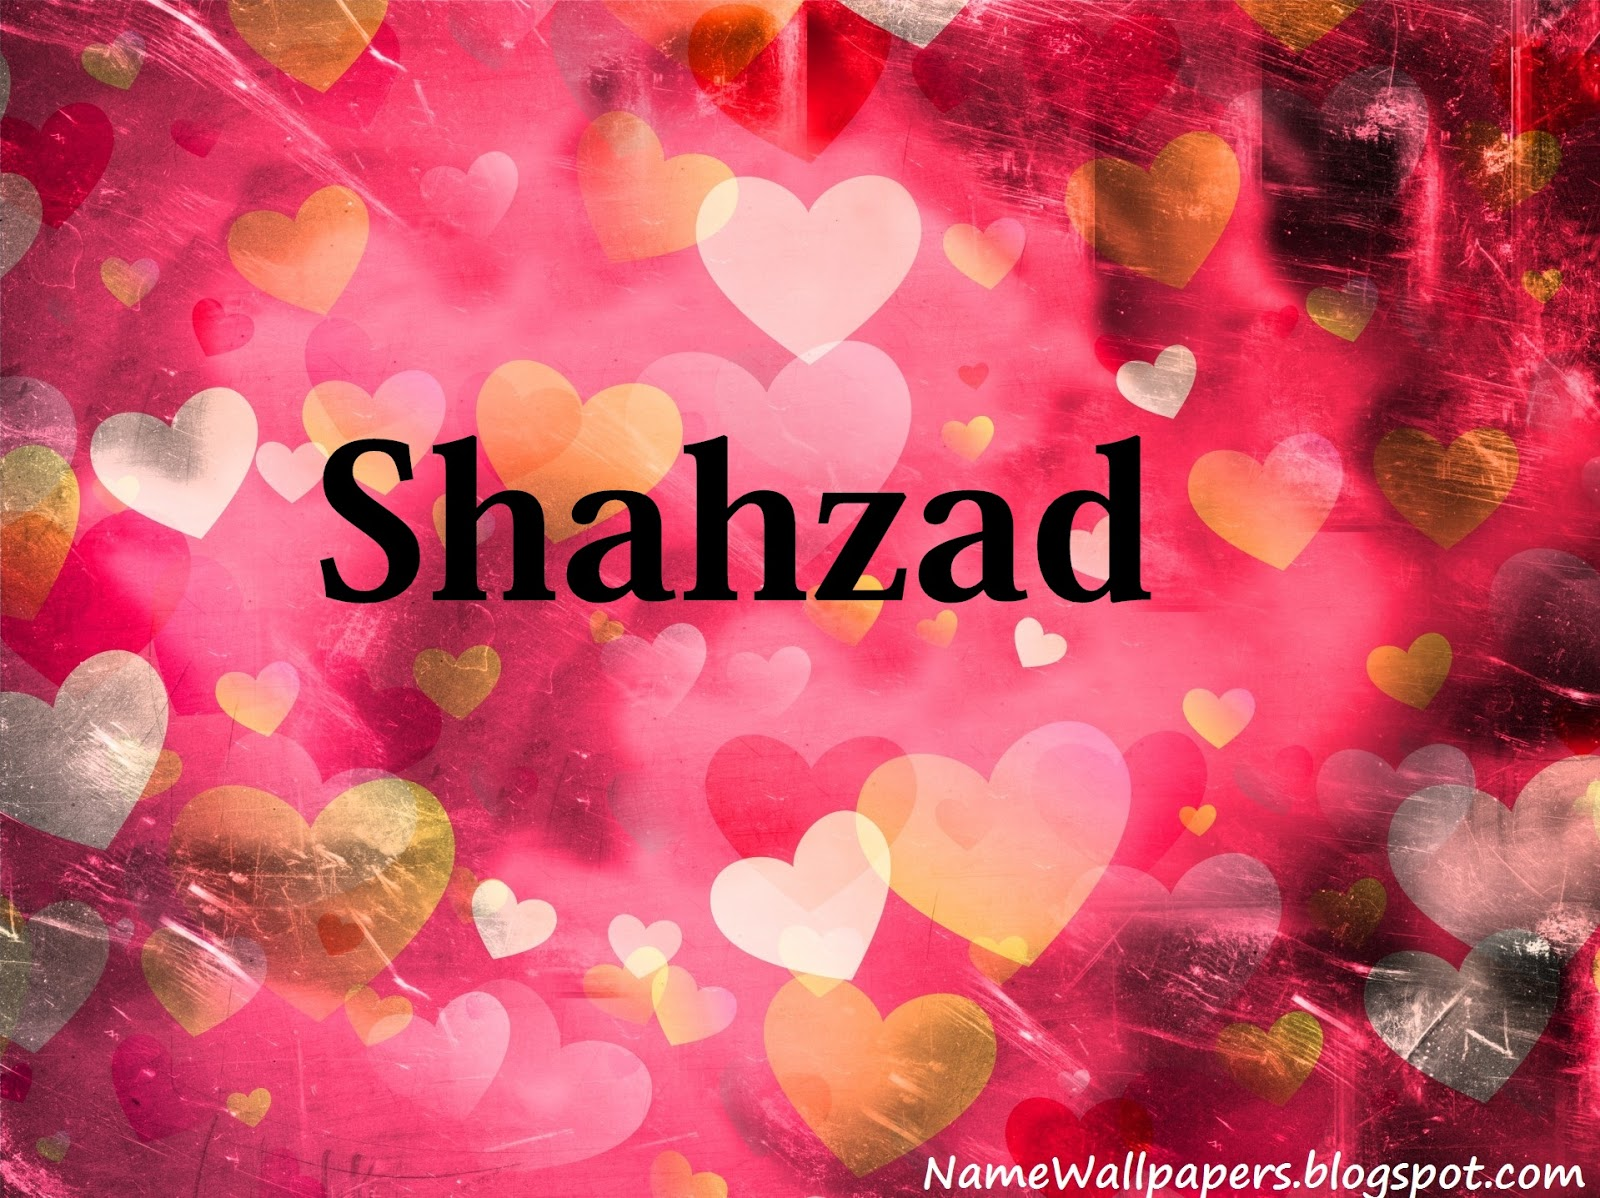 Shahzad Name Wallpaper